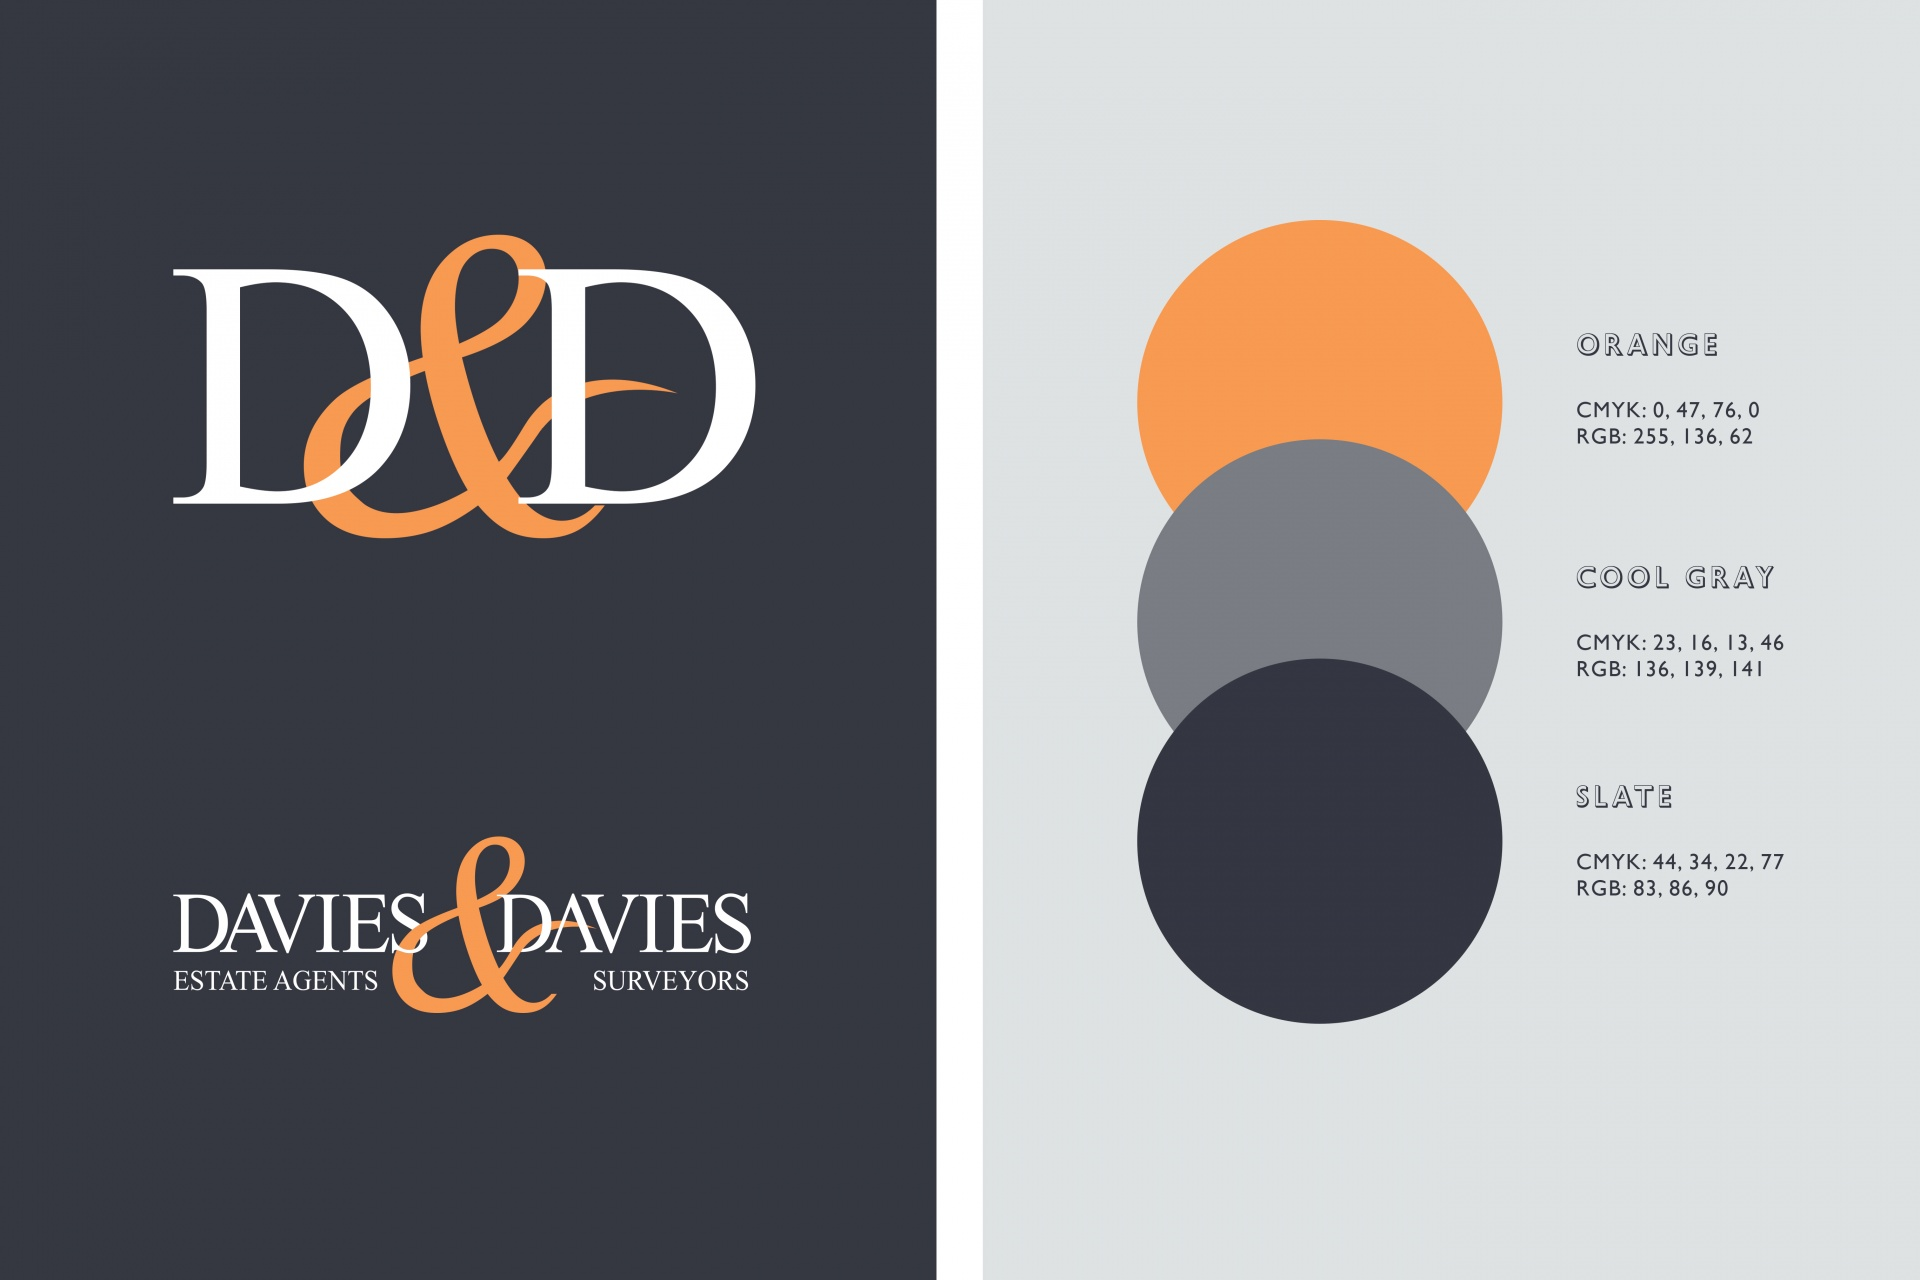 Davies Davies Estate Agents Branding, brand identity, brand design, graphic design, estate agents, london, england,